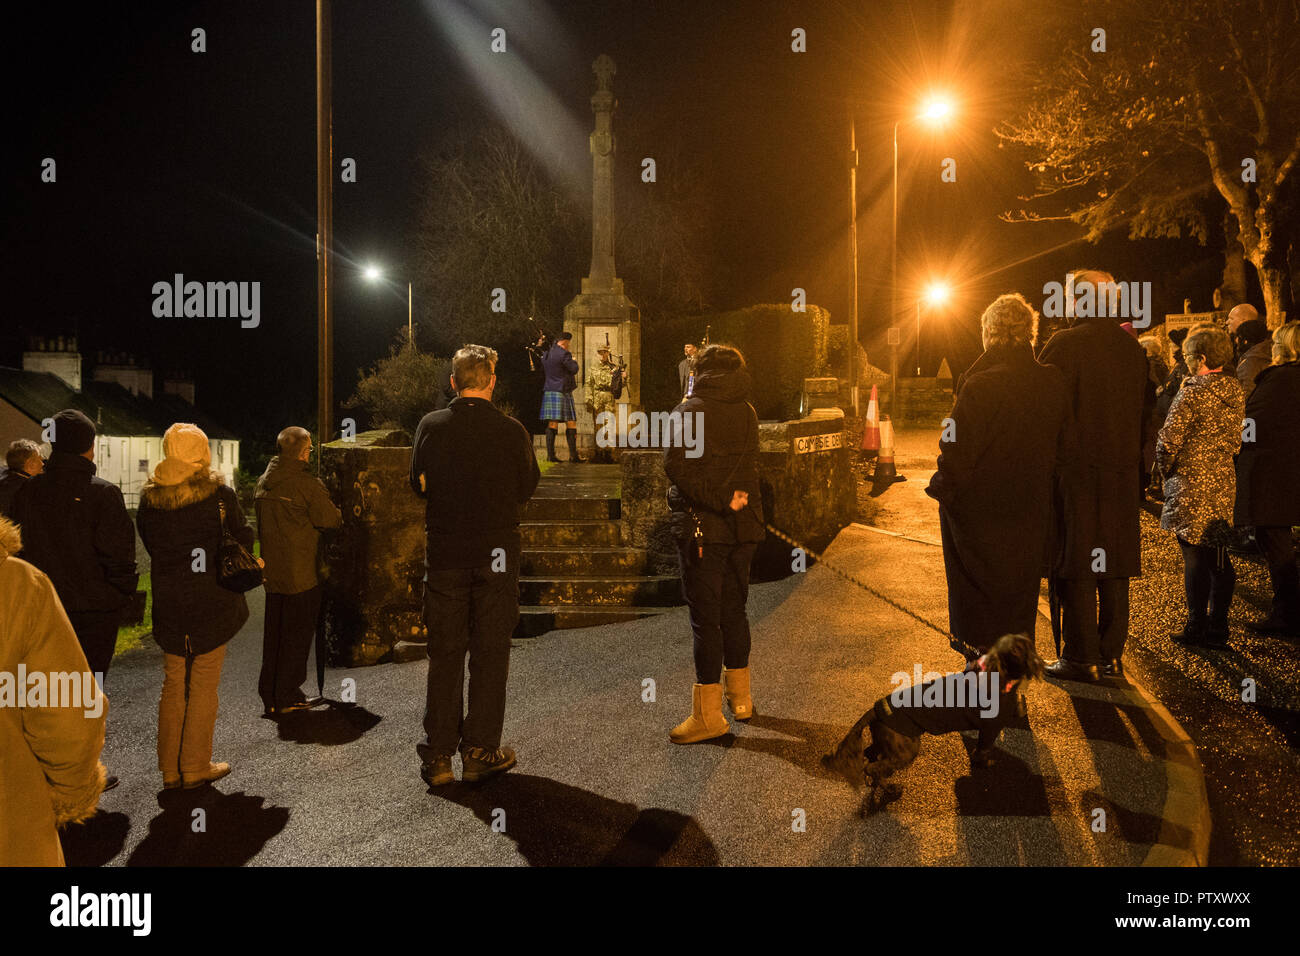 Strathblane, Stirlingshire, Scotland, UK. 11th Nov, 2018. Battle's Over - A Nation's Tribute. In the 6am darkness, pipers at the War Memorial in Strathblane/Blanefield join over 1000 pipers across the world to play 'The Battle's O'er'. The Battle's O'er, a traditional Scottish lament played at the end of battle commences the day's commemorations marking the Centenary of the end of the First World War Credit: Kay Roxby/Alamy Live News - Stock Image